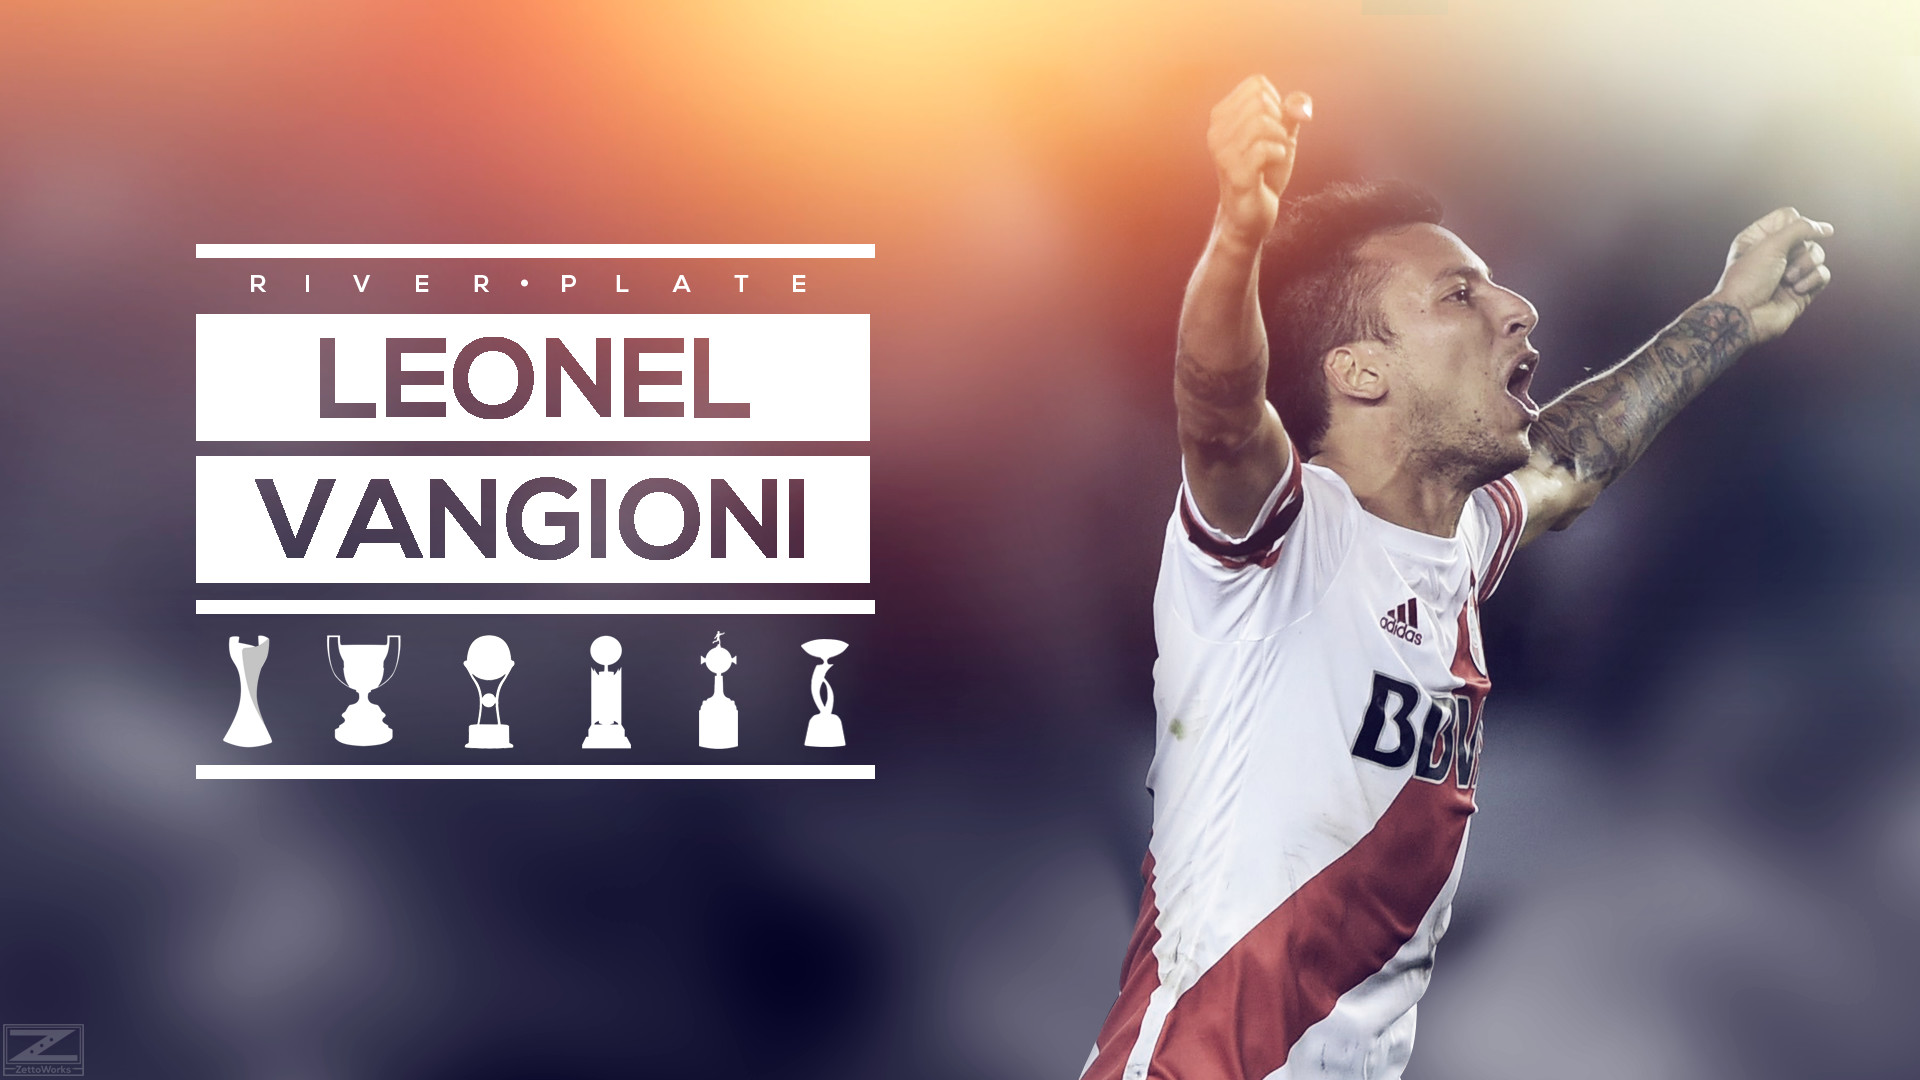 1920x1080 River Plate campeon wallpapers